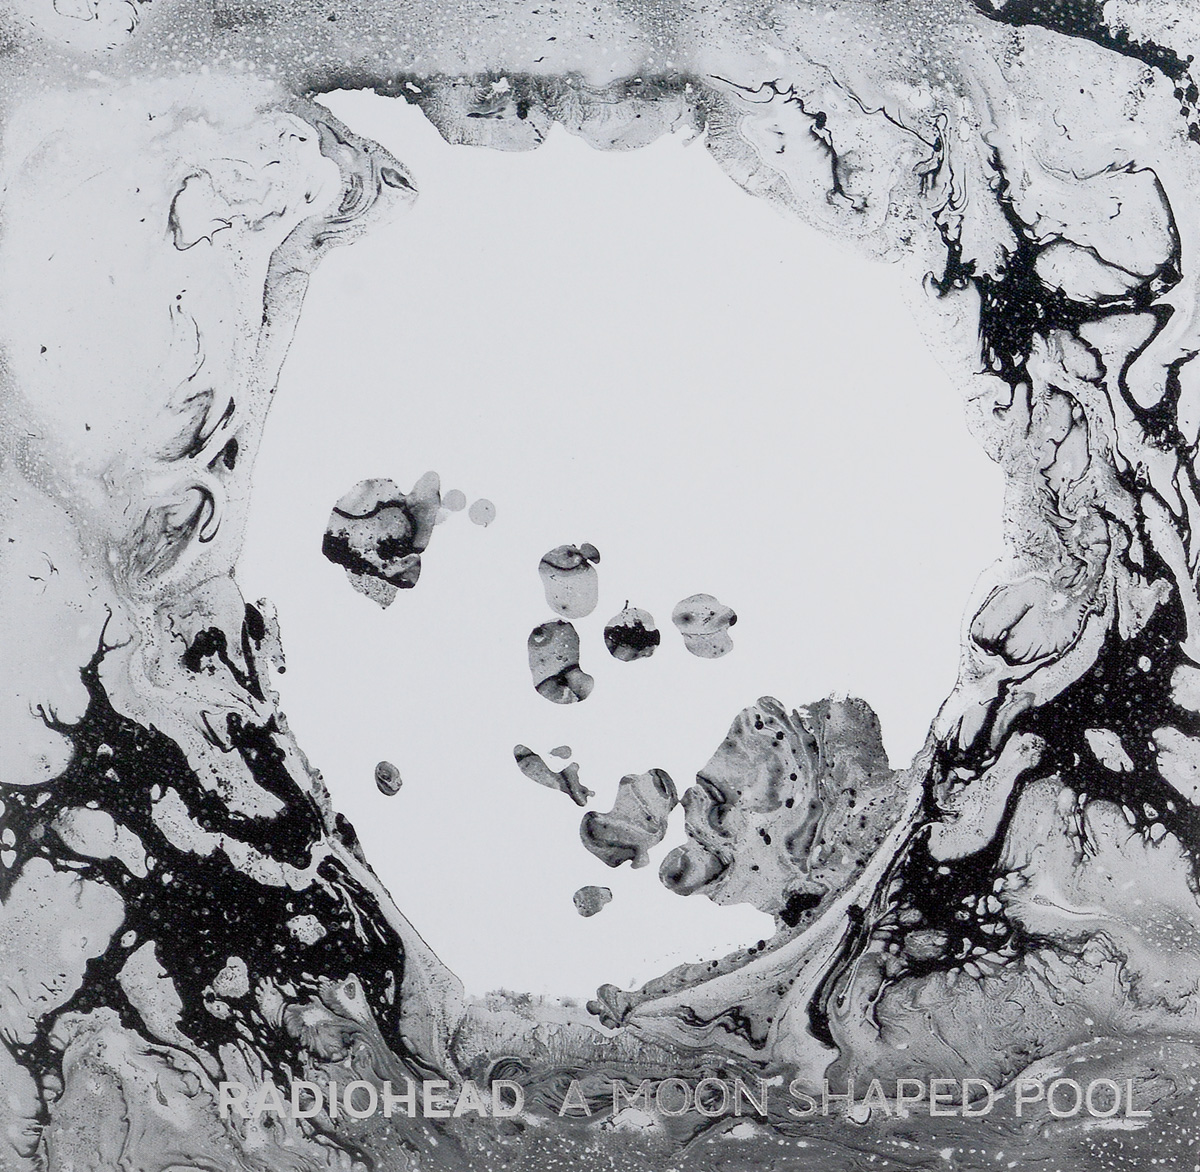 Radiohead. A Moon Shaped Pool